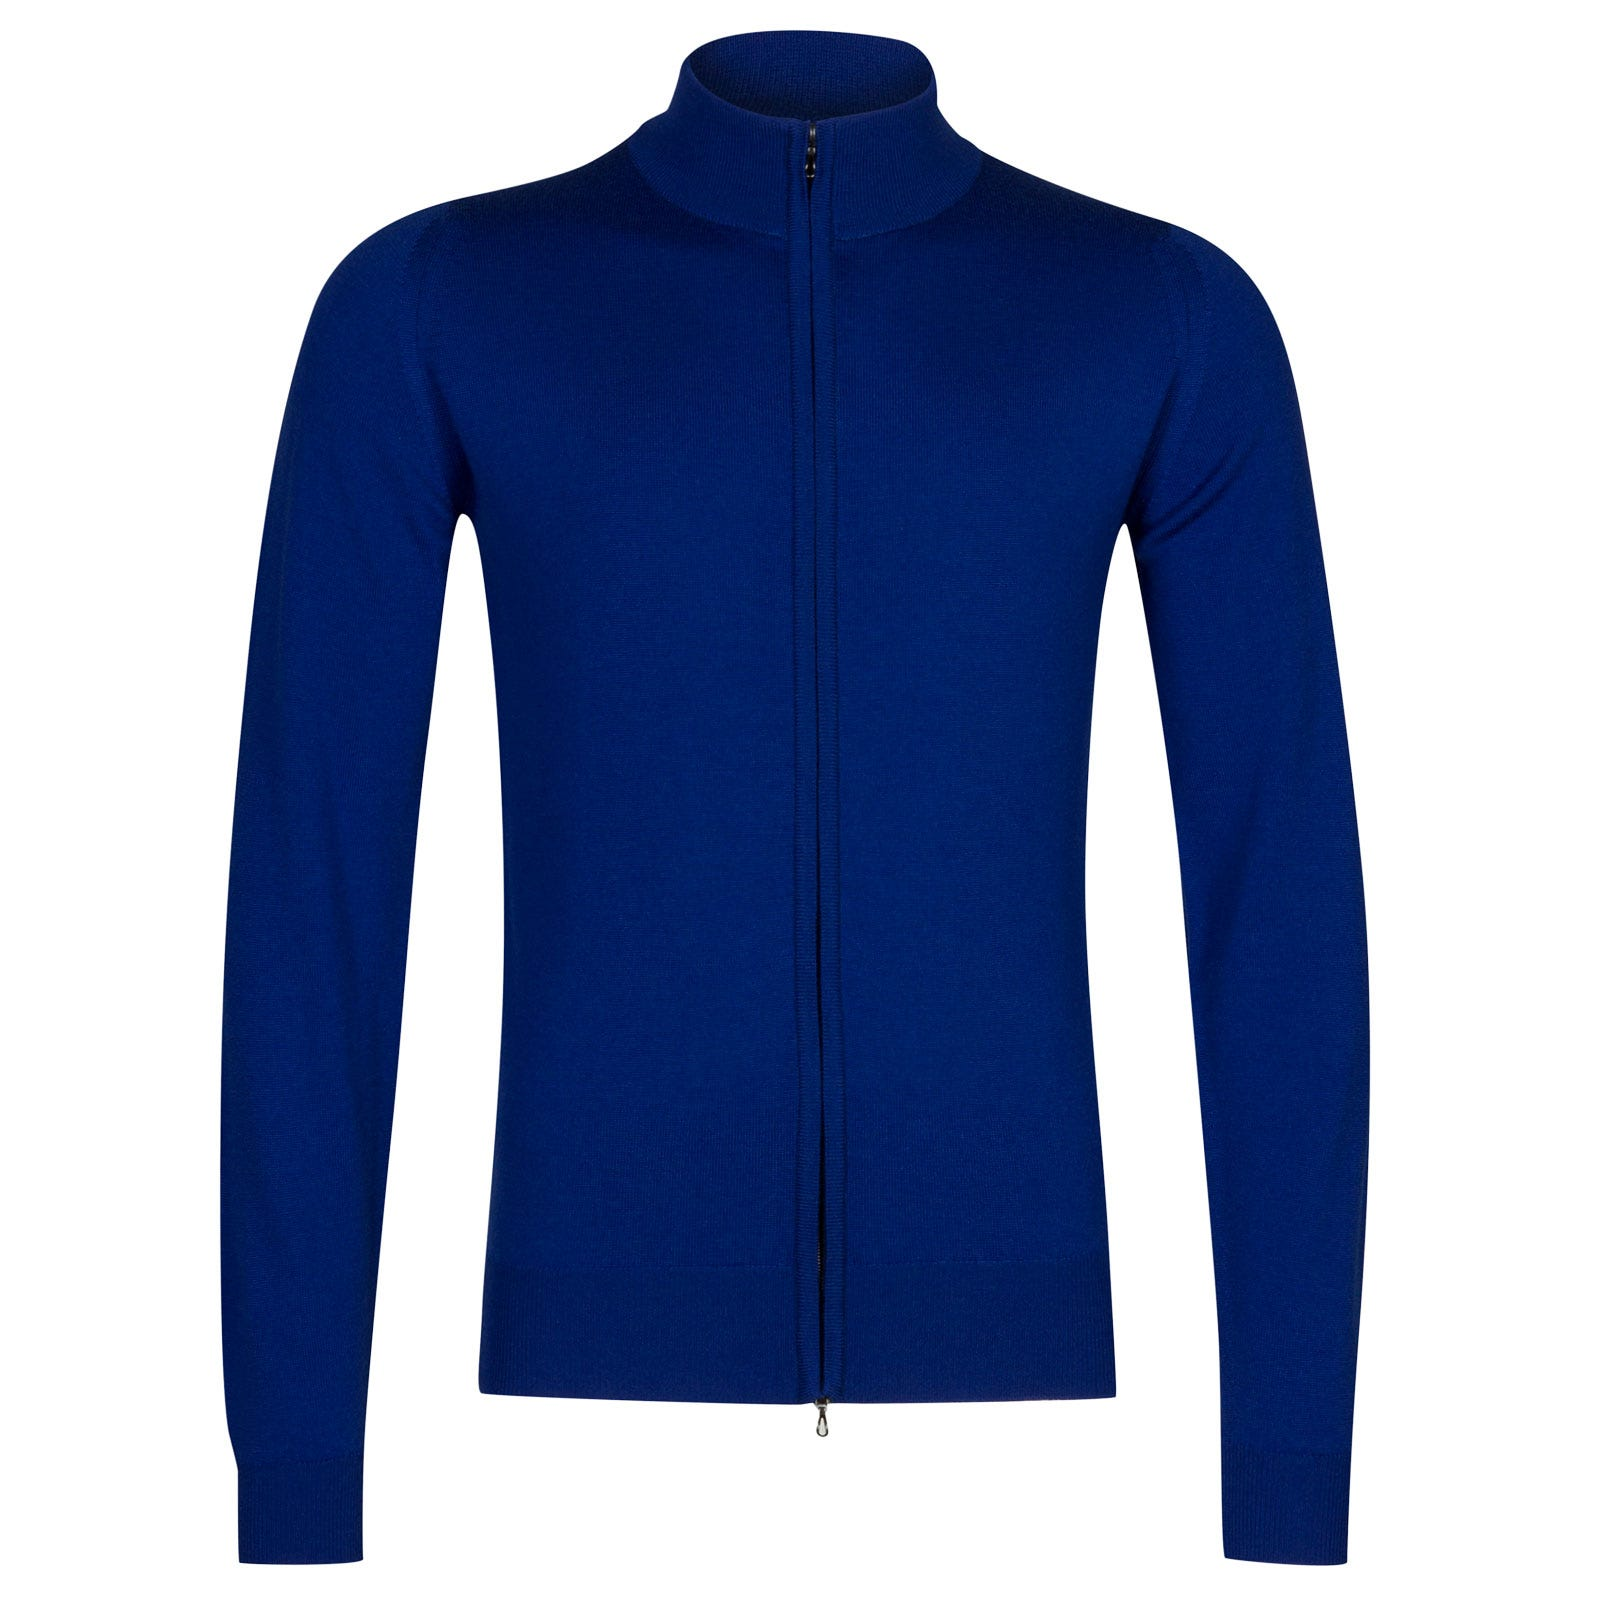 John Smedley claygate Merino Wool Jacket in Coniston Blue-L